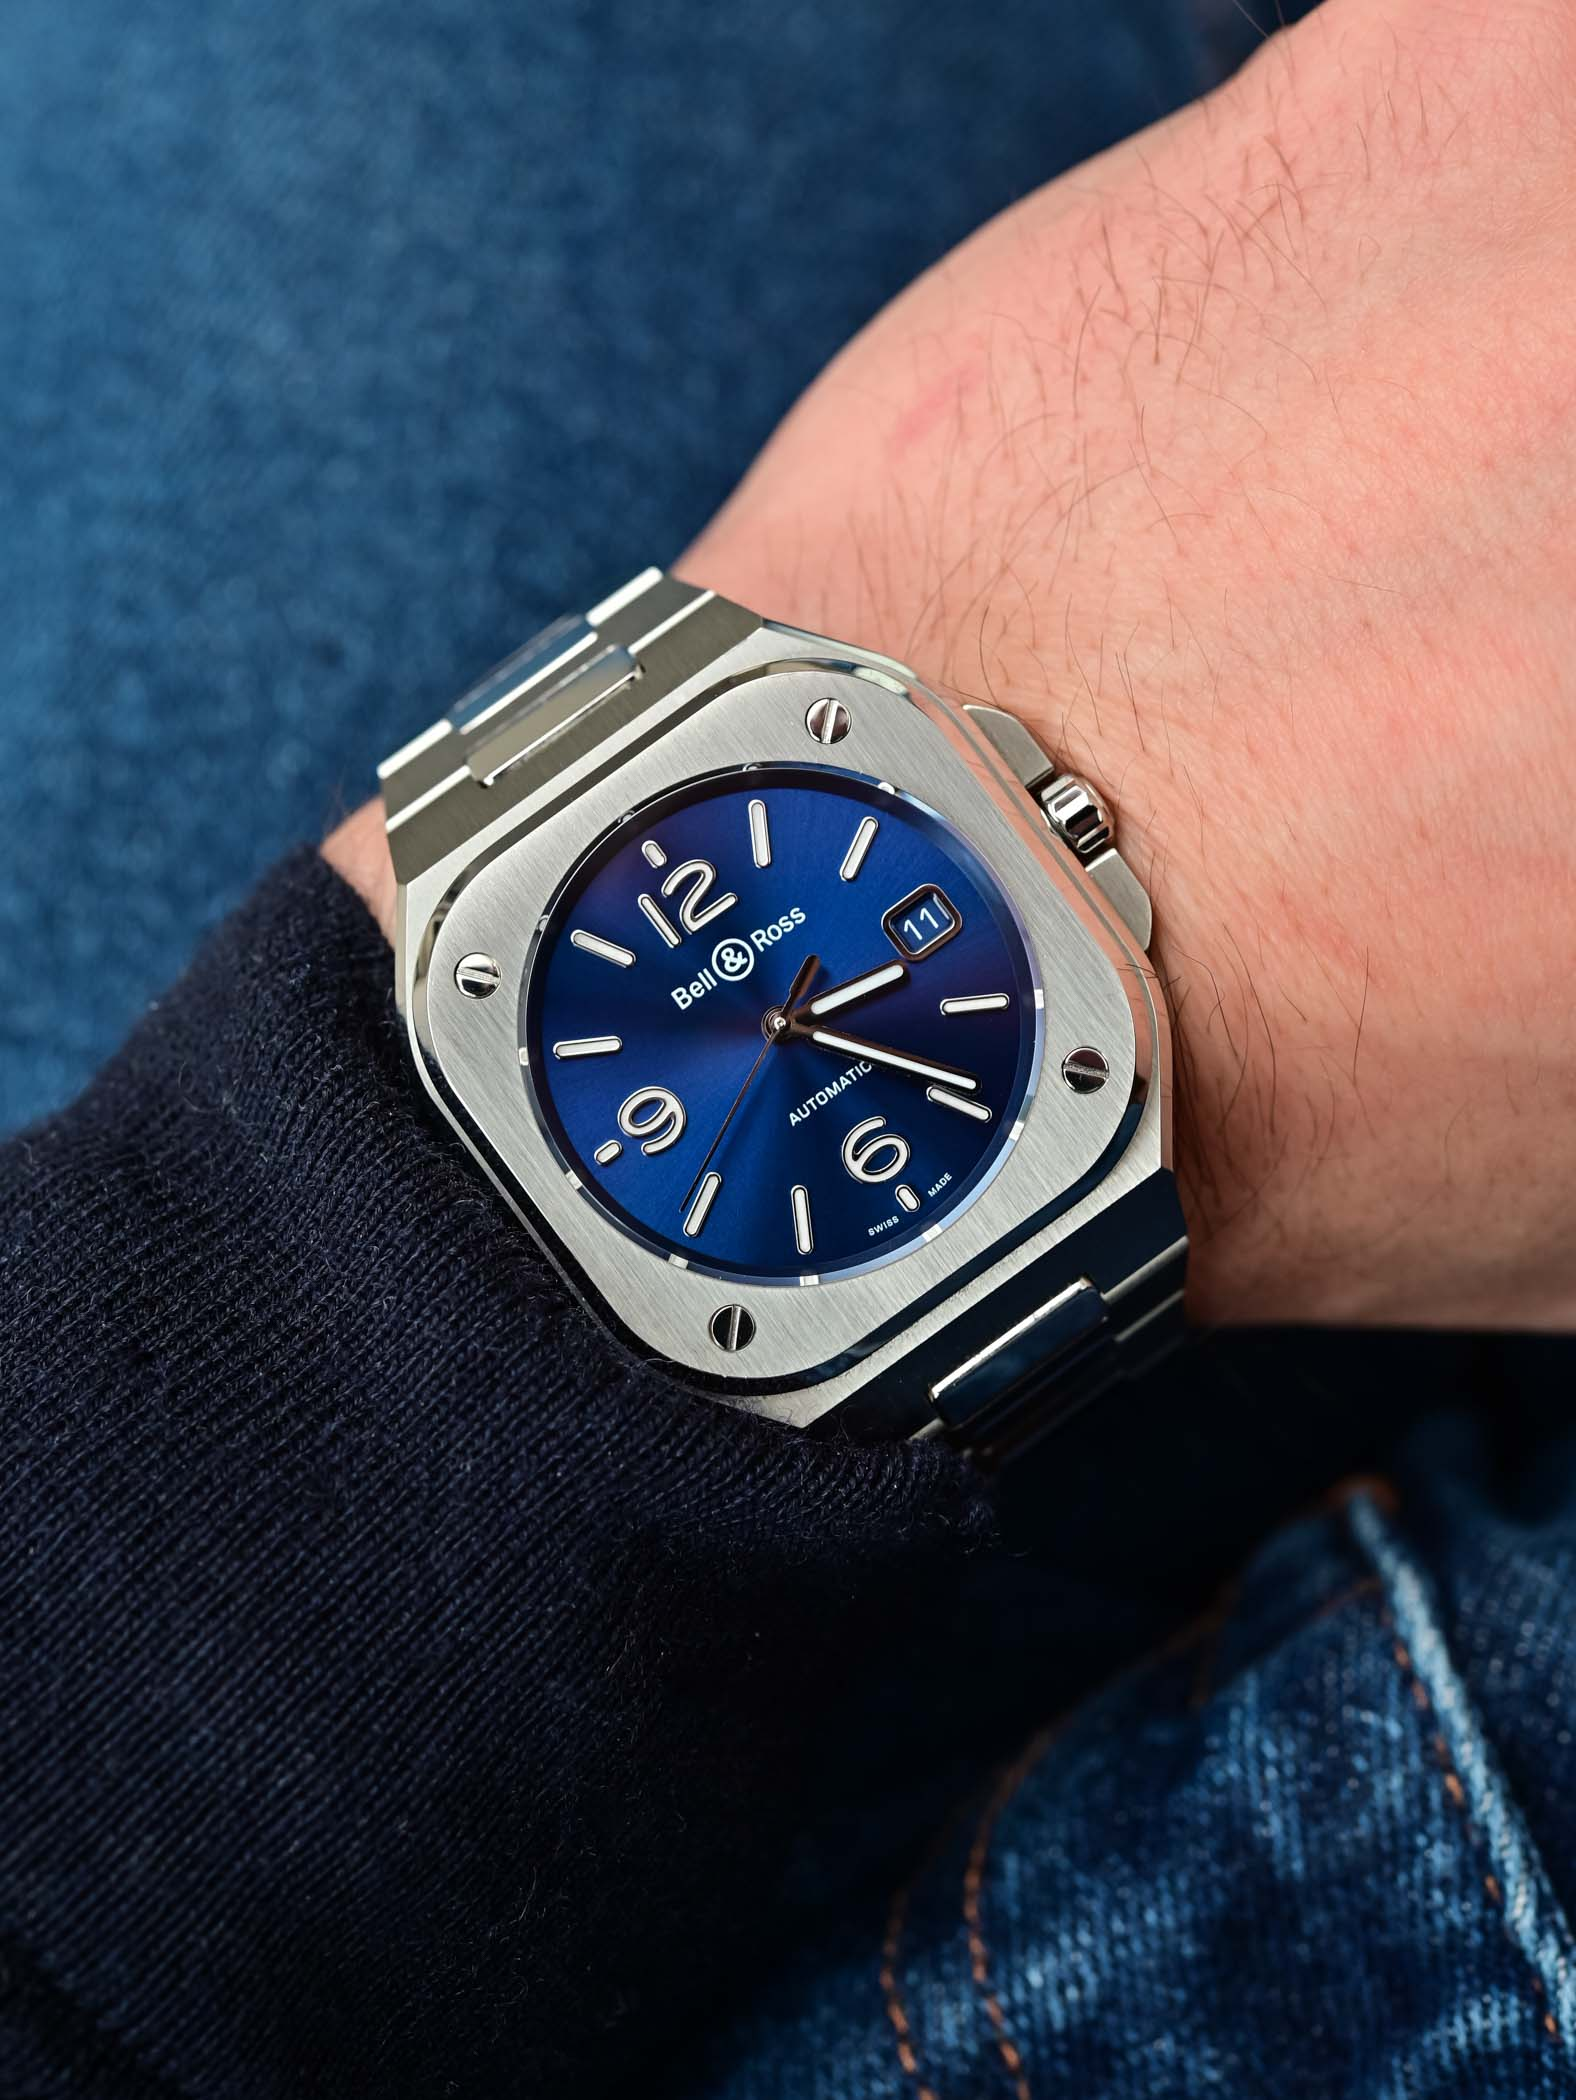 Bell & Ross BR05 Blue Steel - Review